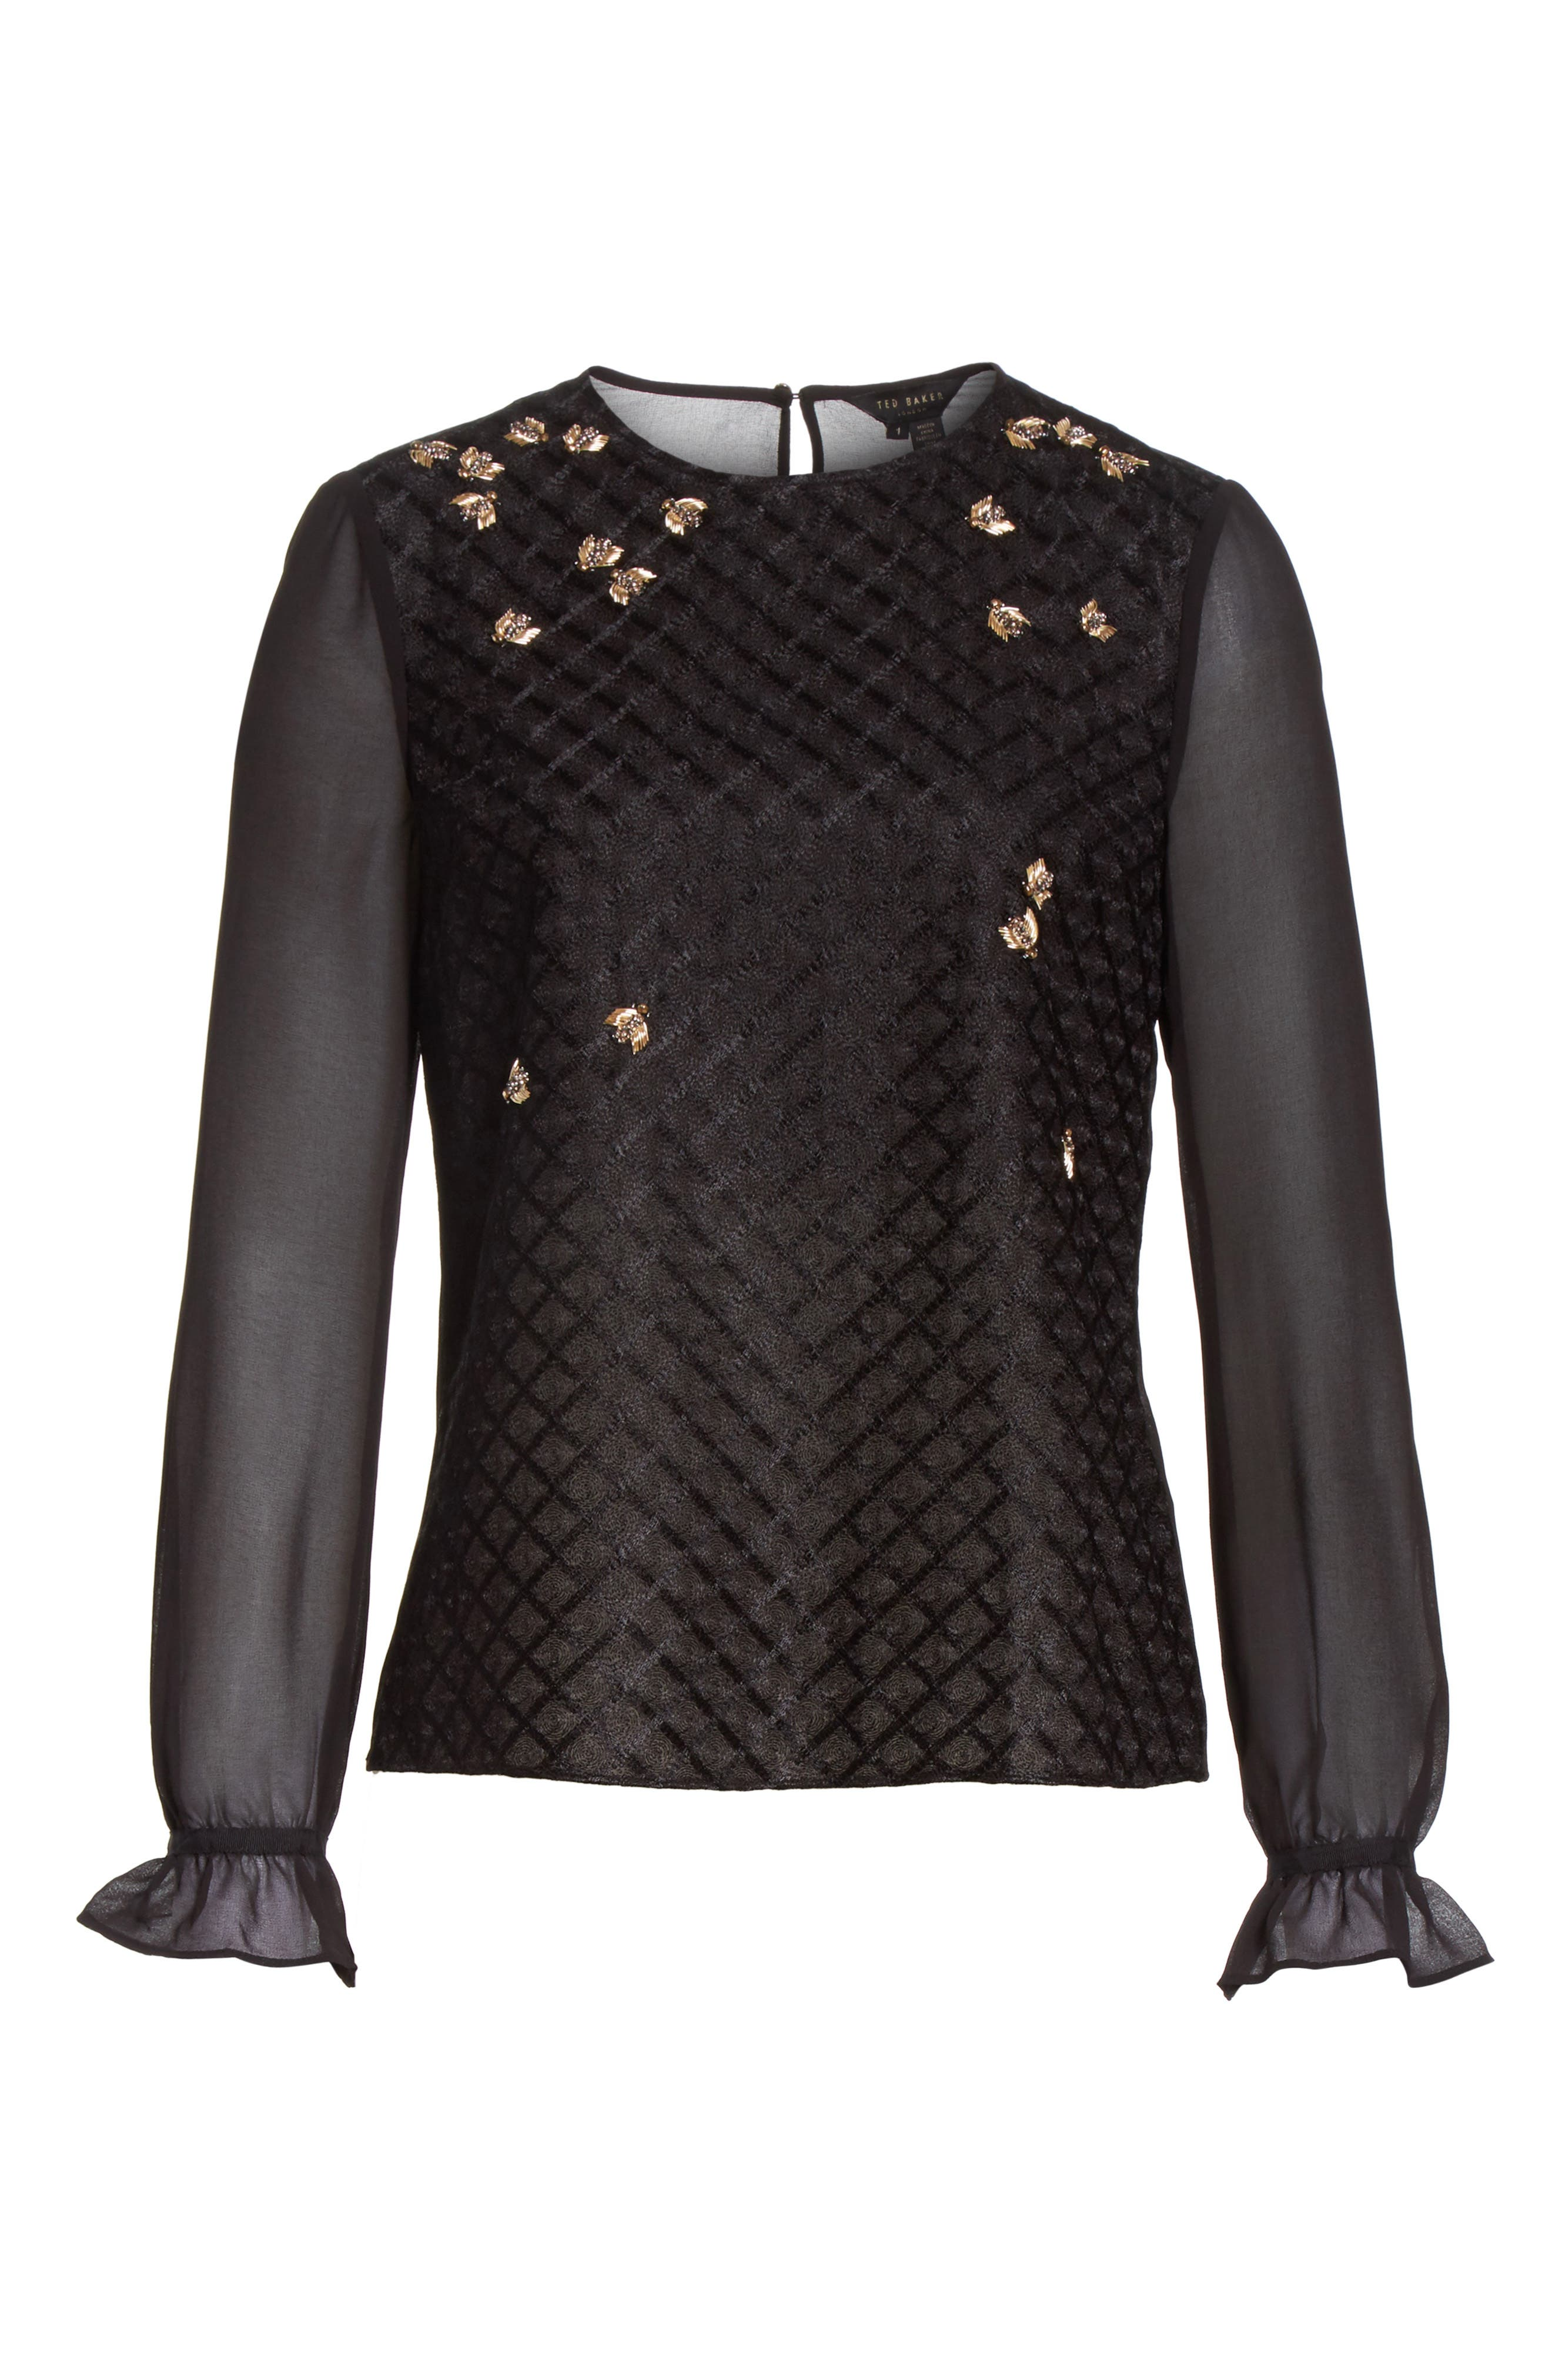 Queen Bee Embellished Top,                             Alternate thumbnail 6, color,                             001